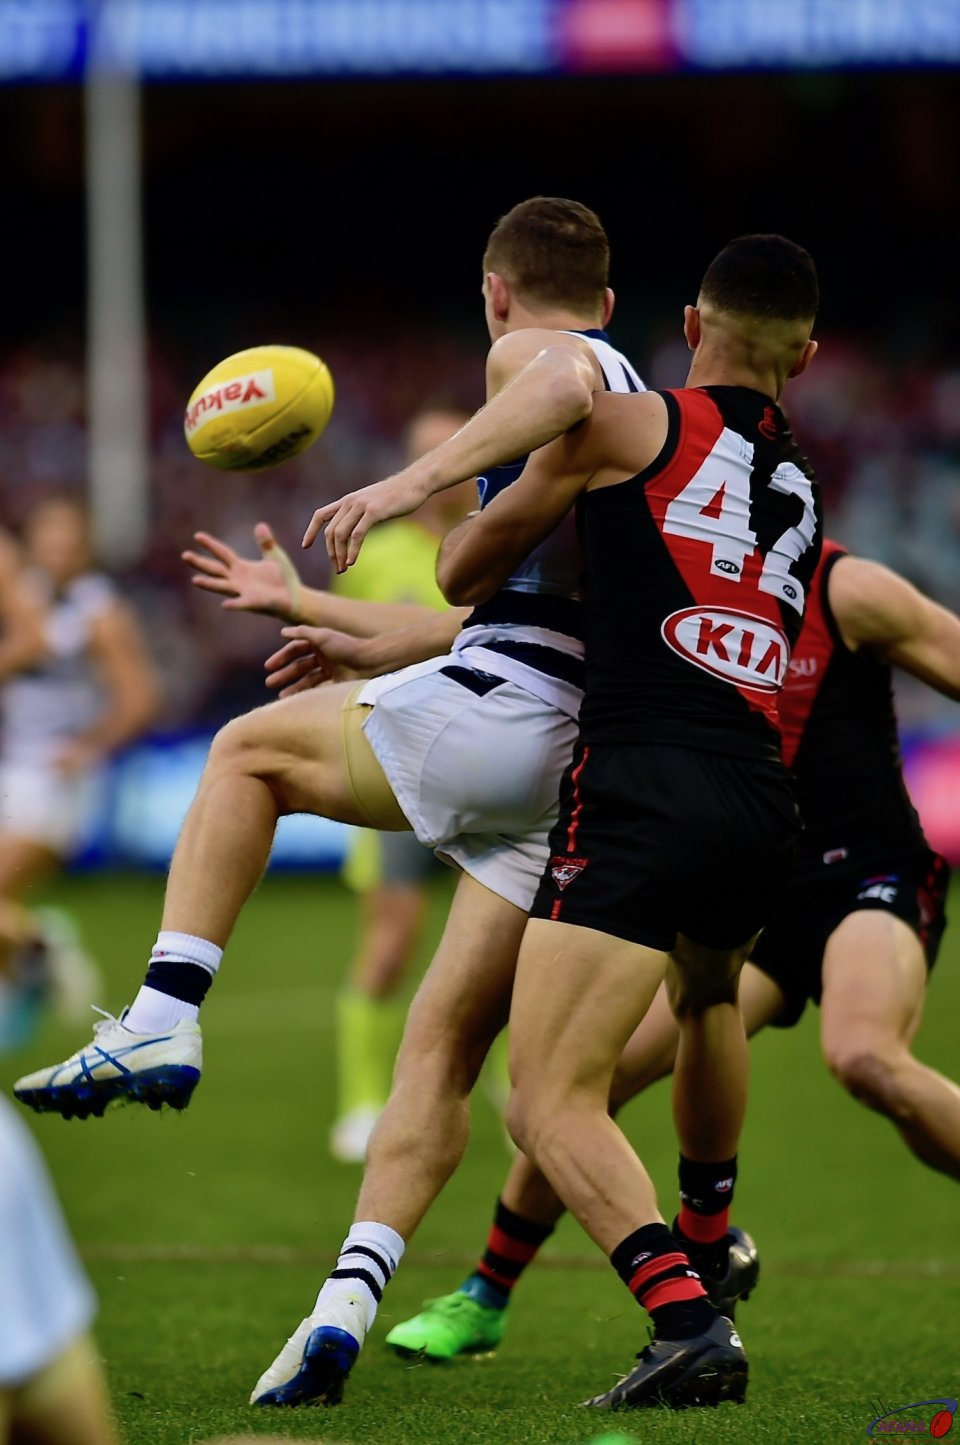 Saad tackle Selwood.